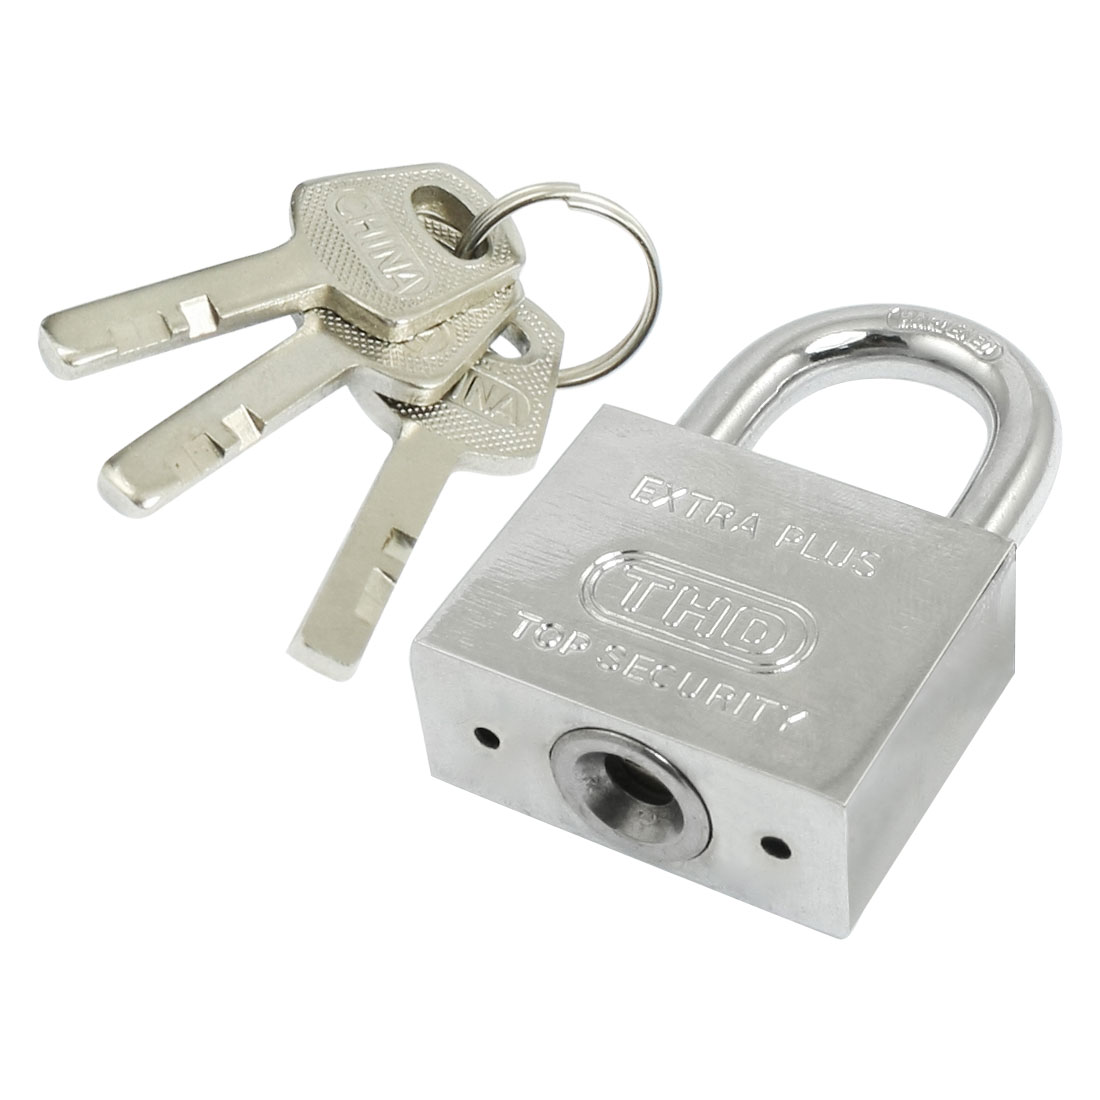 40mm Width Silver Tone Metal Shackle Security Padlock w 3 Keys